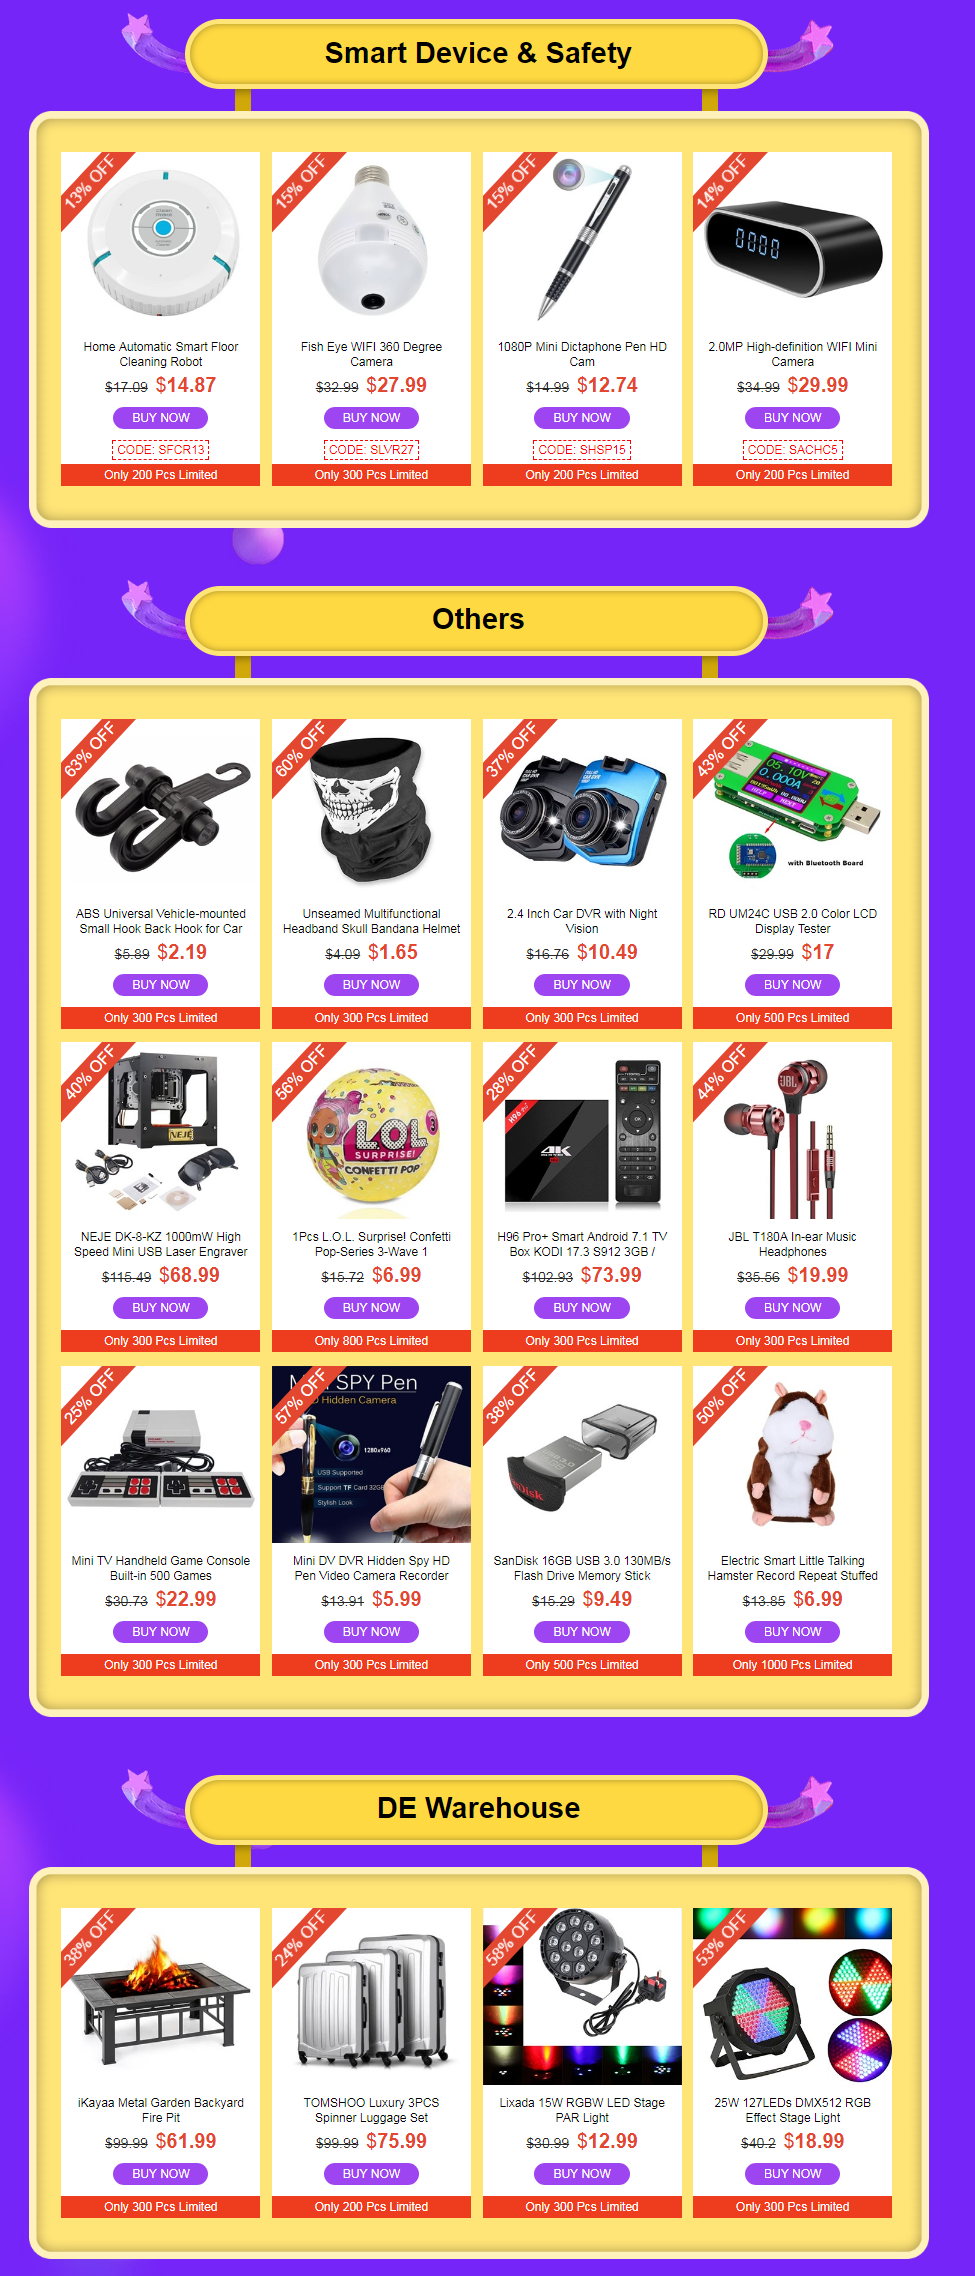 Smart device others tomtop winter Clearance